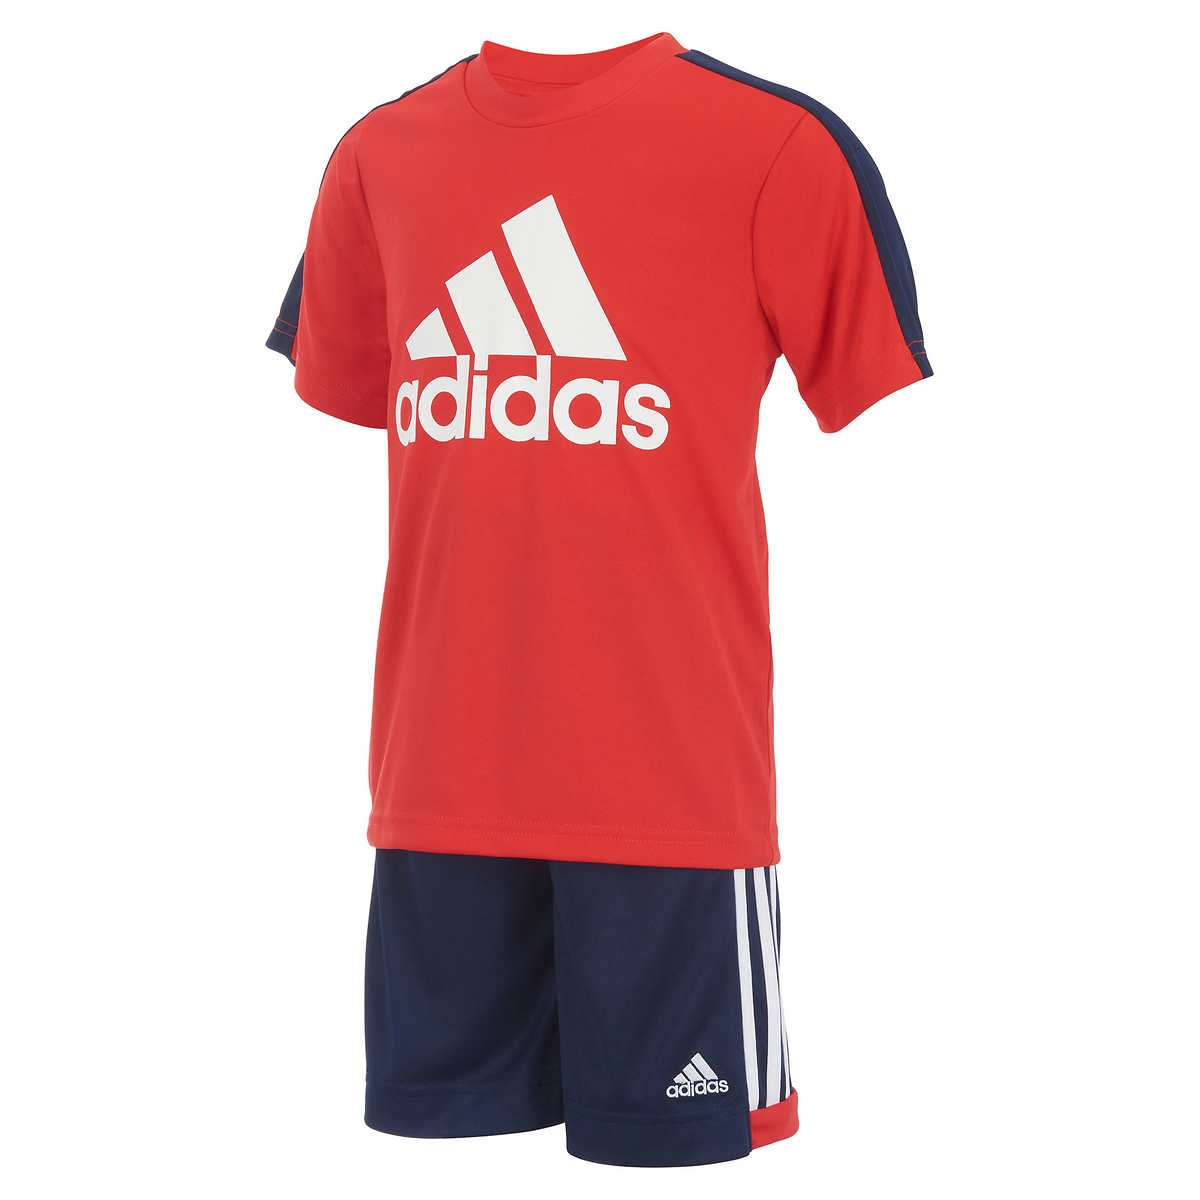 adidas Boys 2 Piece T-Shirt Tee & Shorts Set Athletic Outfit Size 7 (Red, 7)